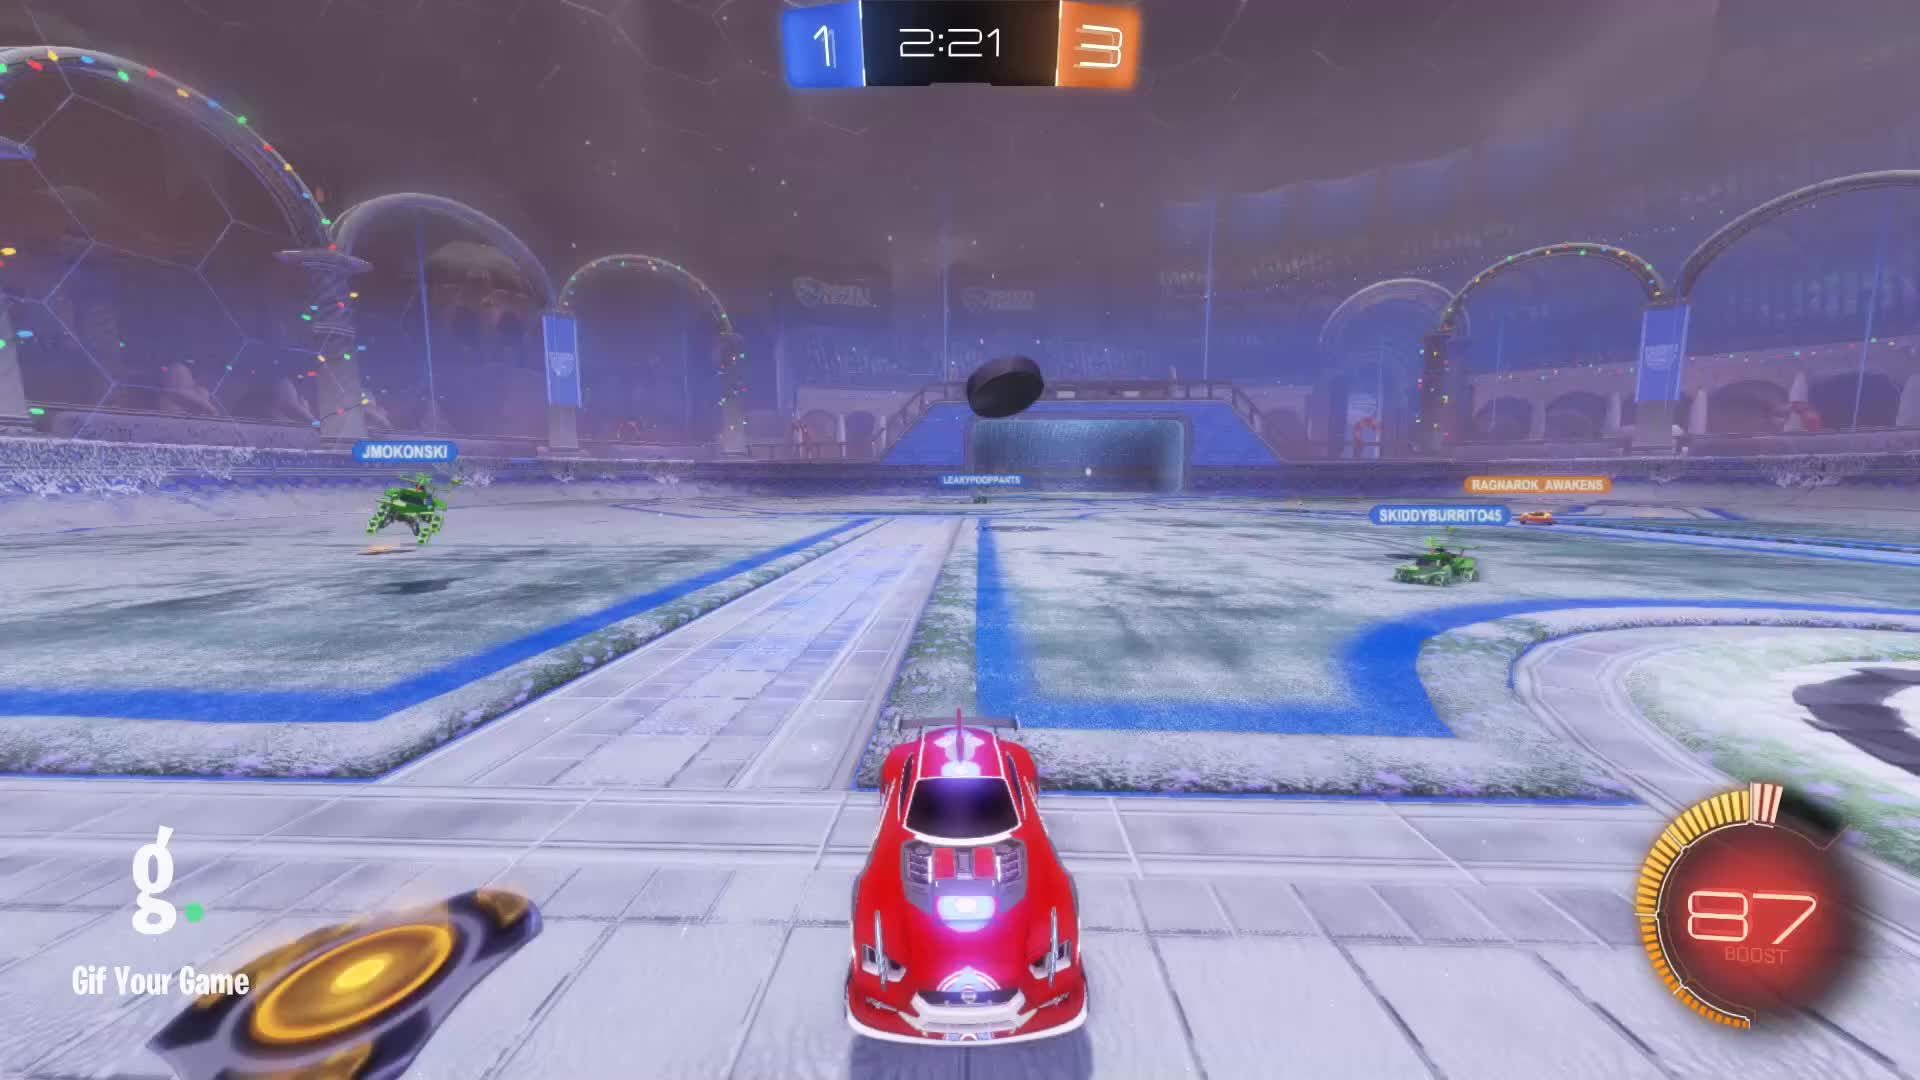 Gif Your Game, GifYourGame, Goal, Rocket League, RocketLeague, Vrae, Goal 5: Vrae GIFs